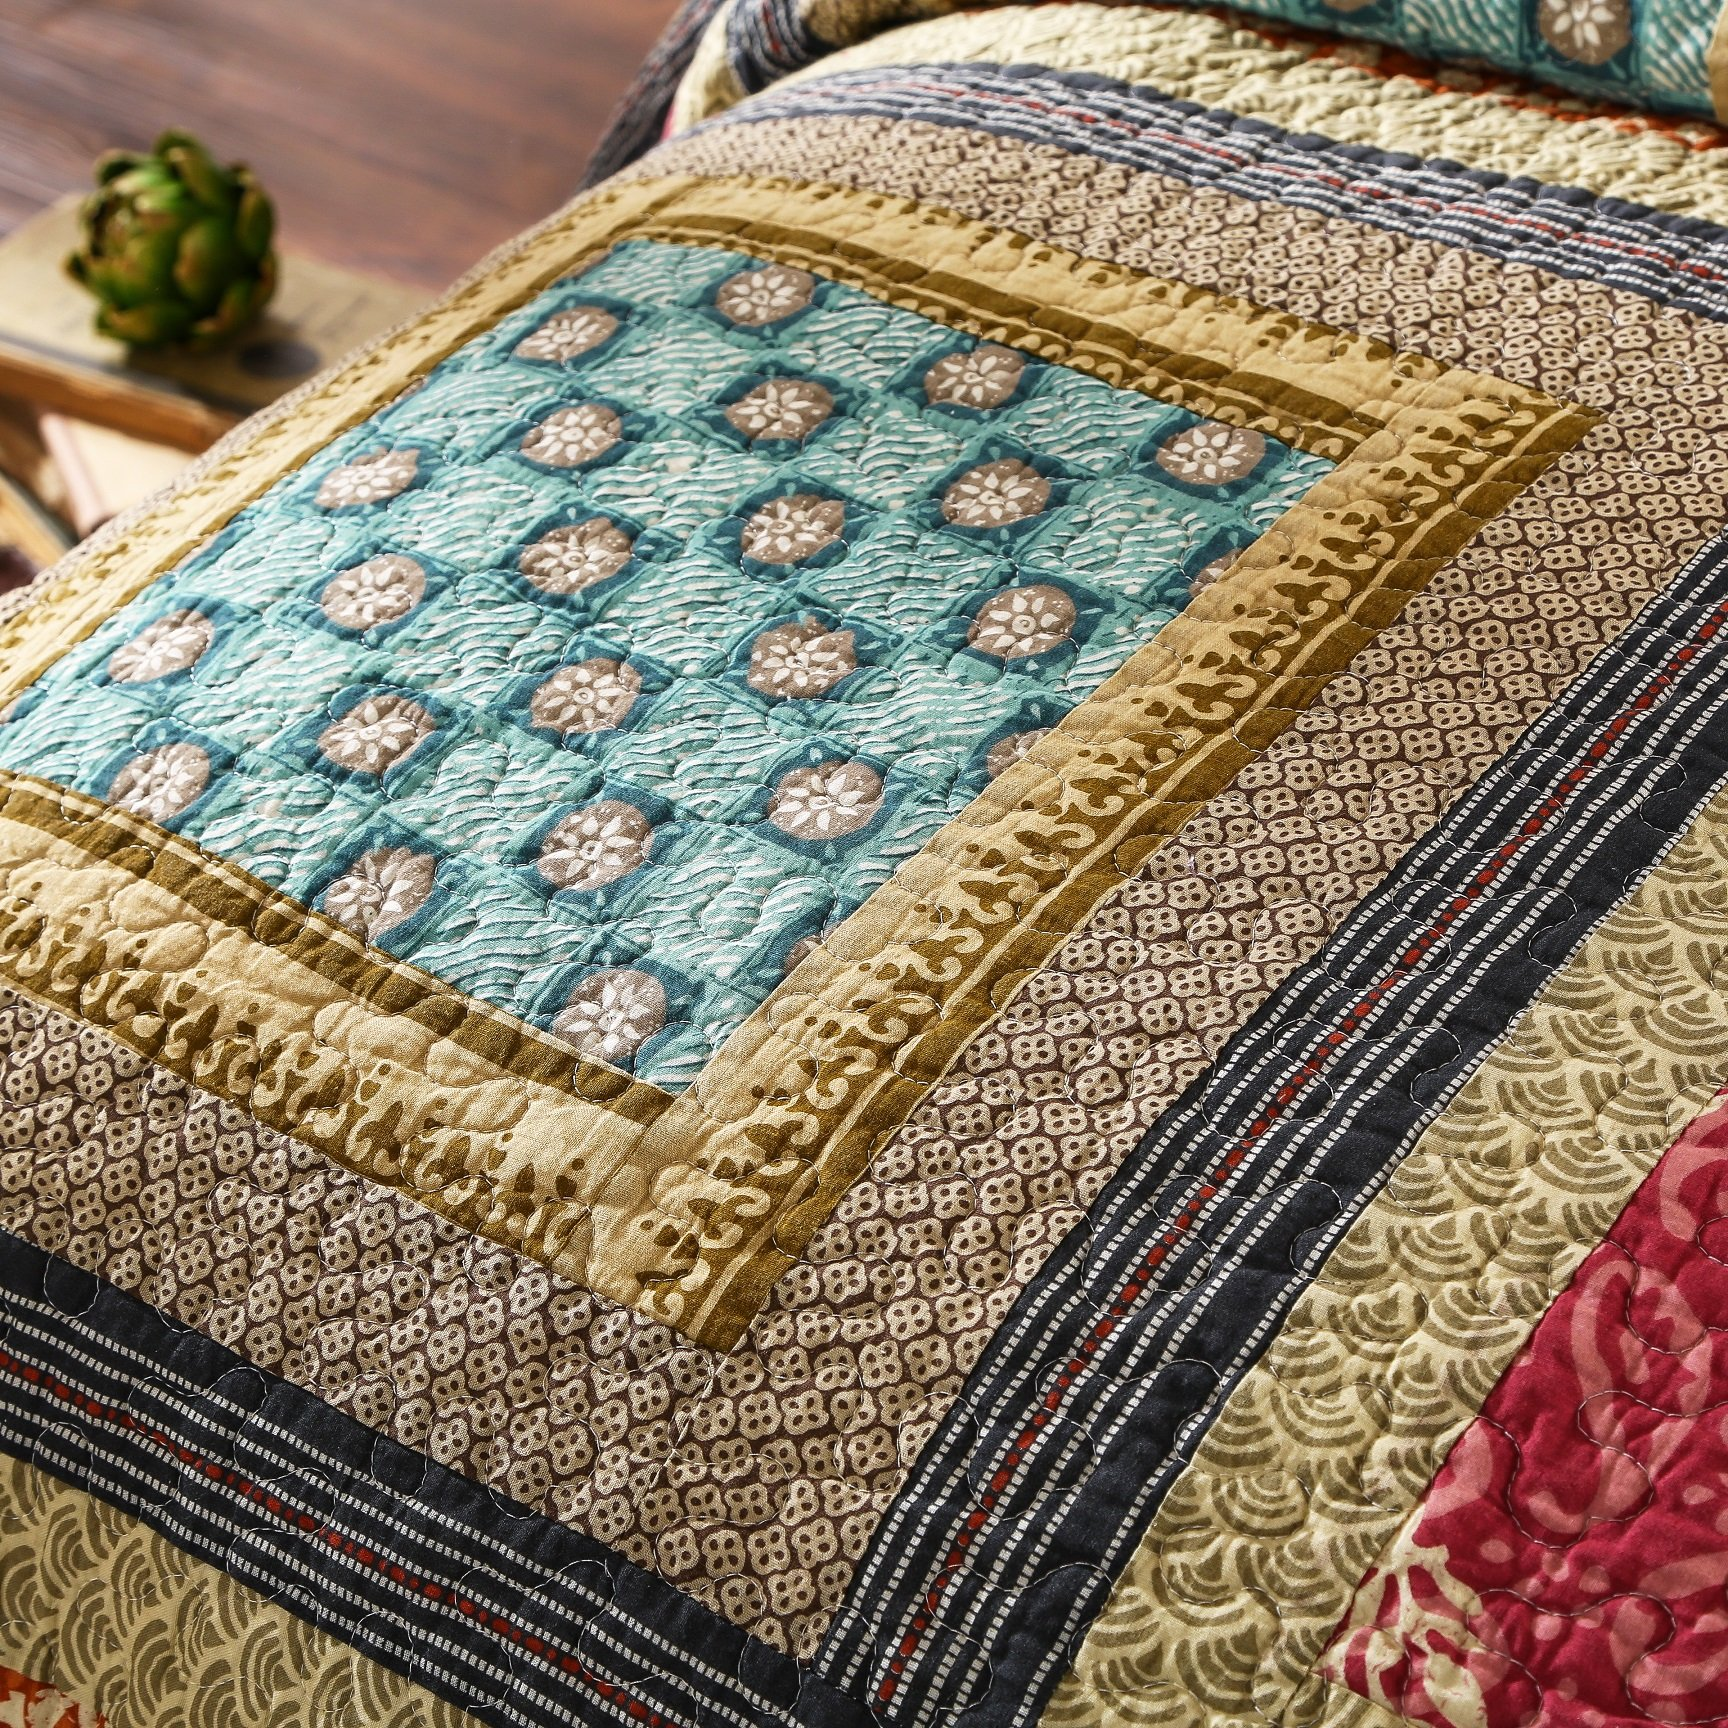 Dada Bedding Collection Reversible Bohemian Real Patchwork Gallery of Roses Cotton Quilt Bedspread Set, Multi-Colored, Cal King, 3-Pieces by DaDa Bedding Collection (Image #3)